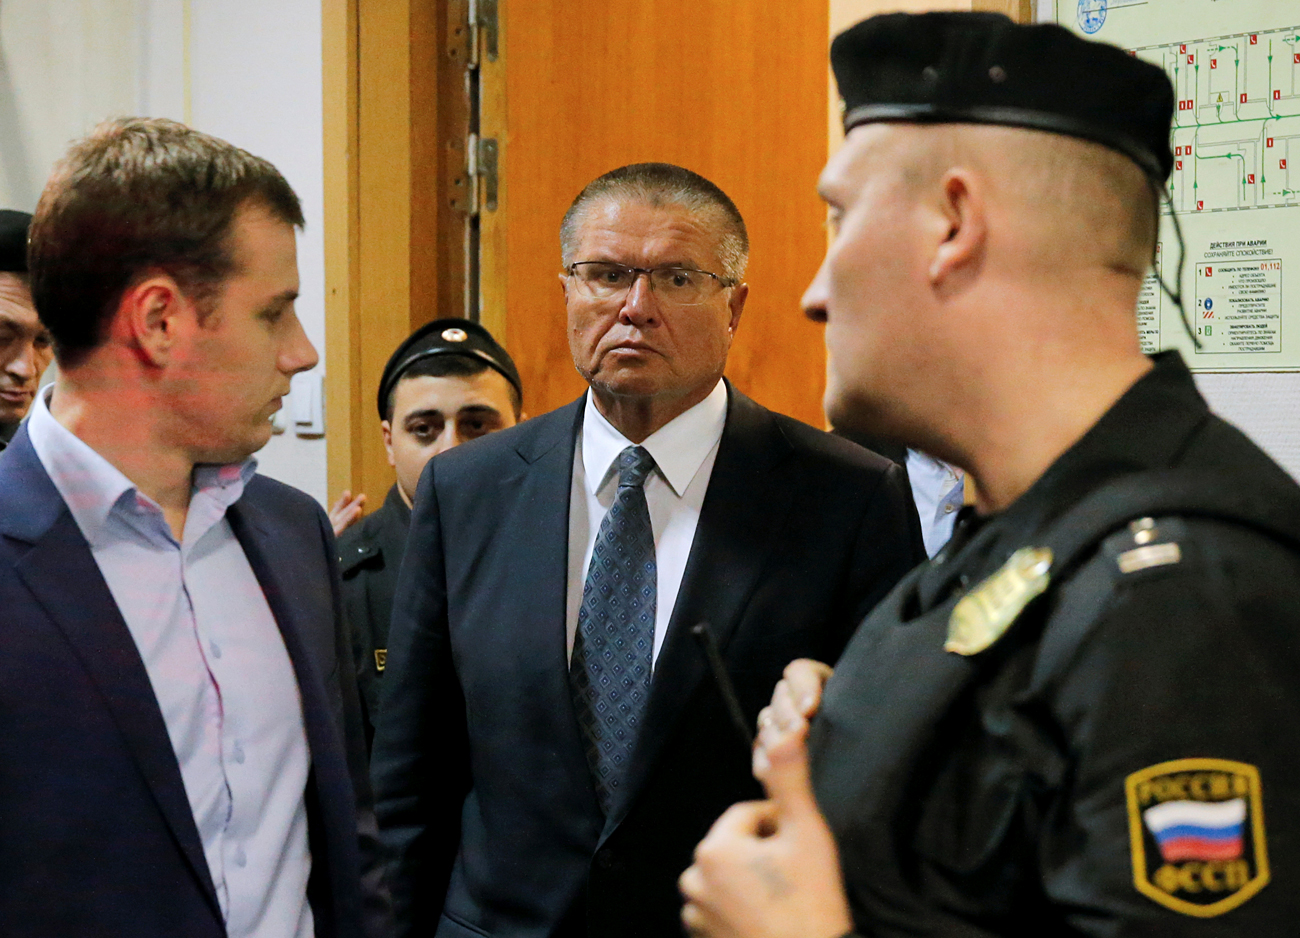 Russian Economy Minister Alexei Ulyukayev who was detained by law enforcement officials on corruption charges, is escorted upon his arrival for a hearing at the Basmanny district court in Moscow, Nov. 15, 2016.